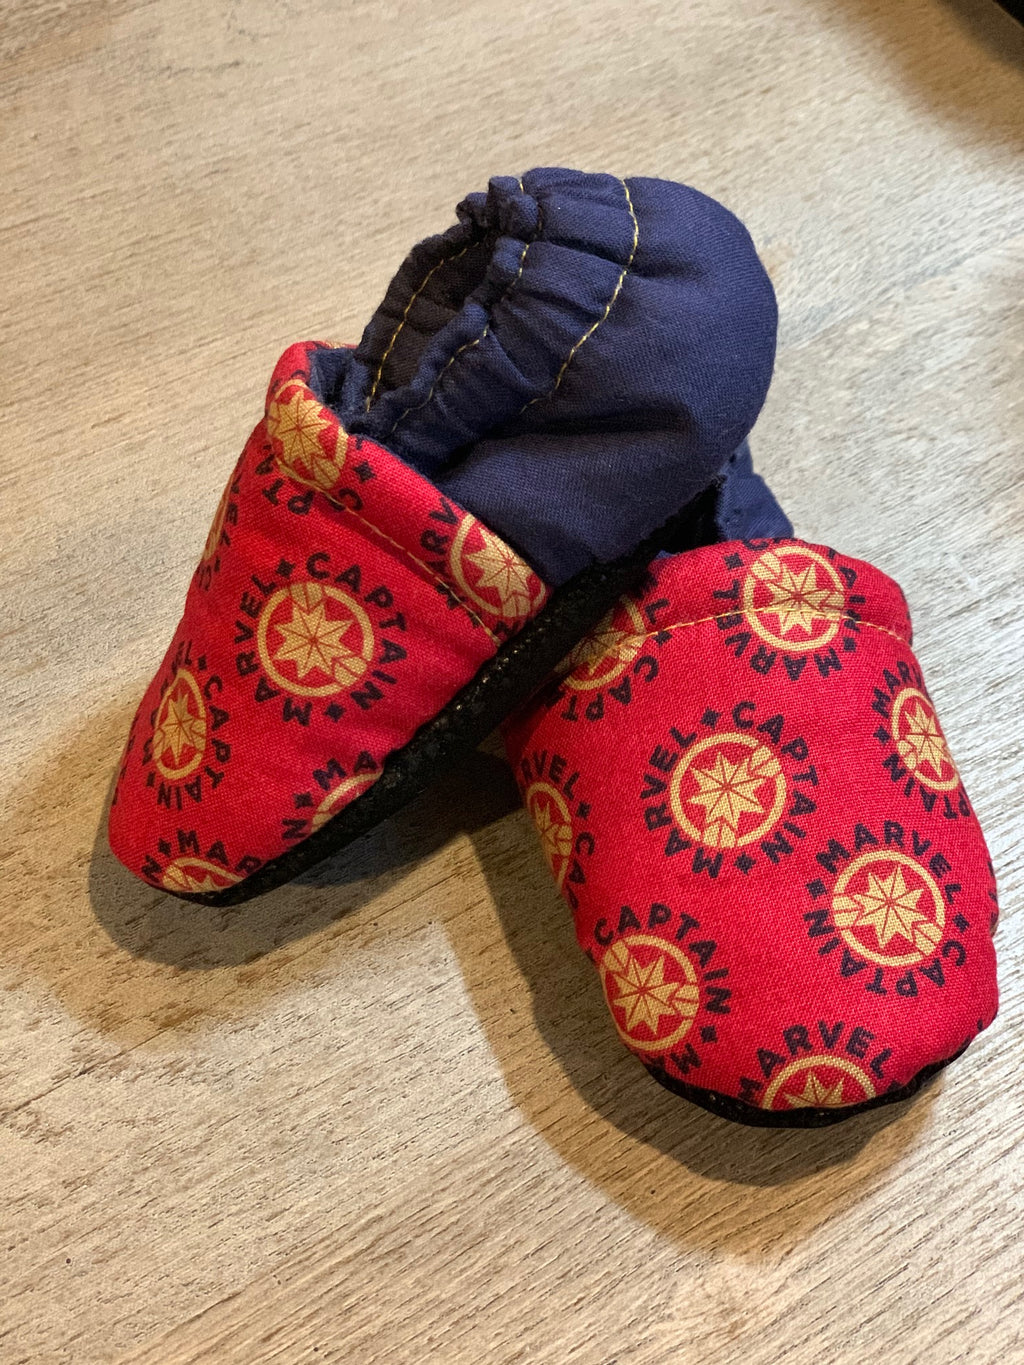 Captain Marvel Moccasin